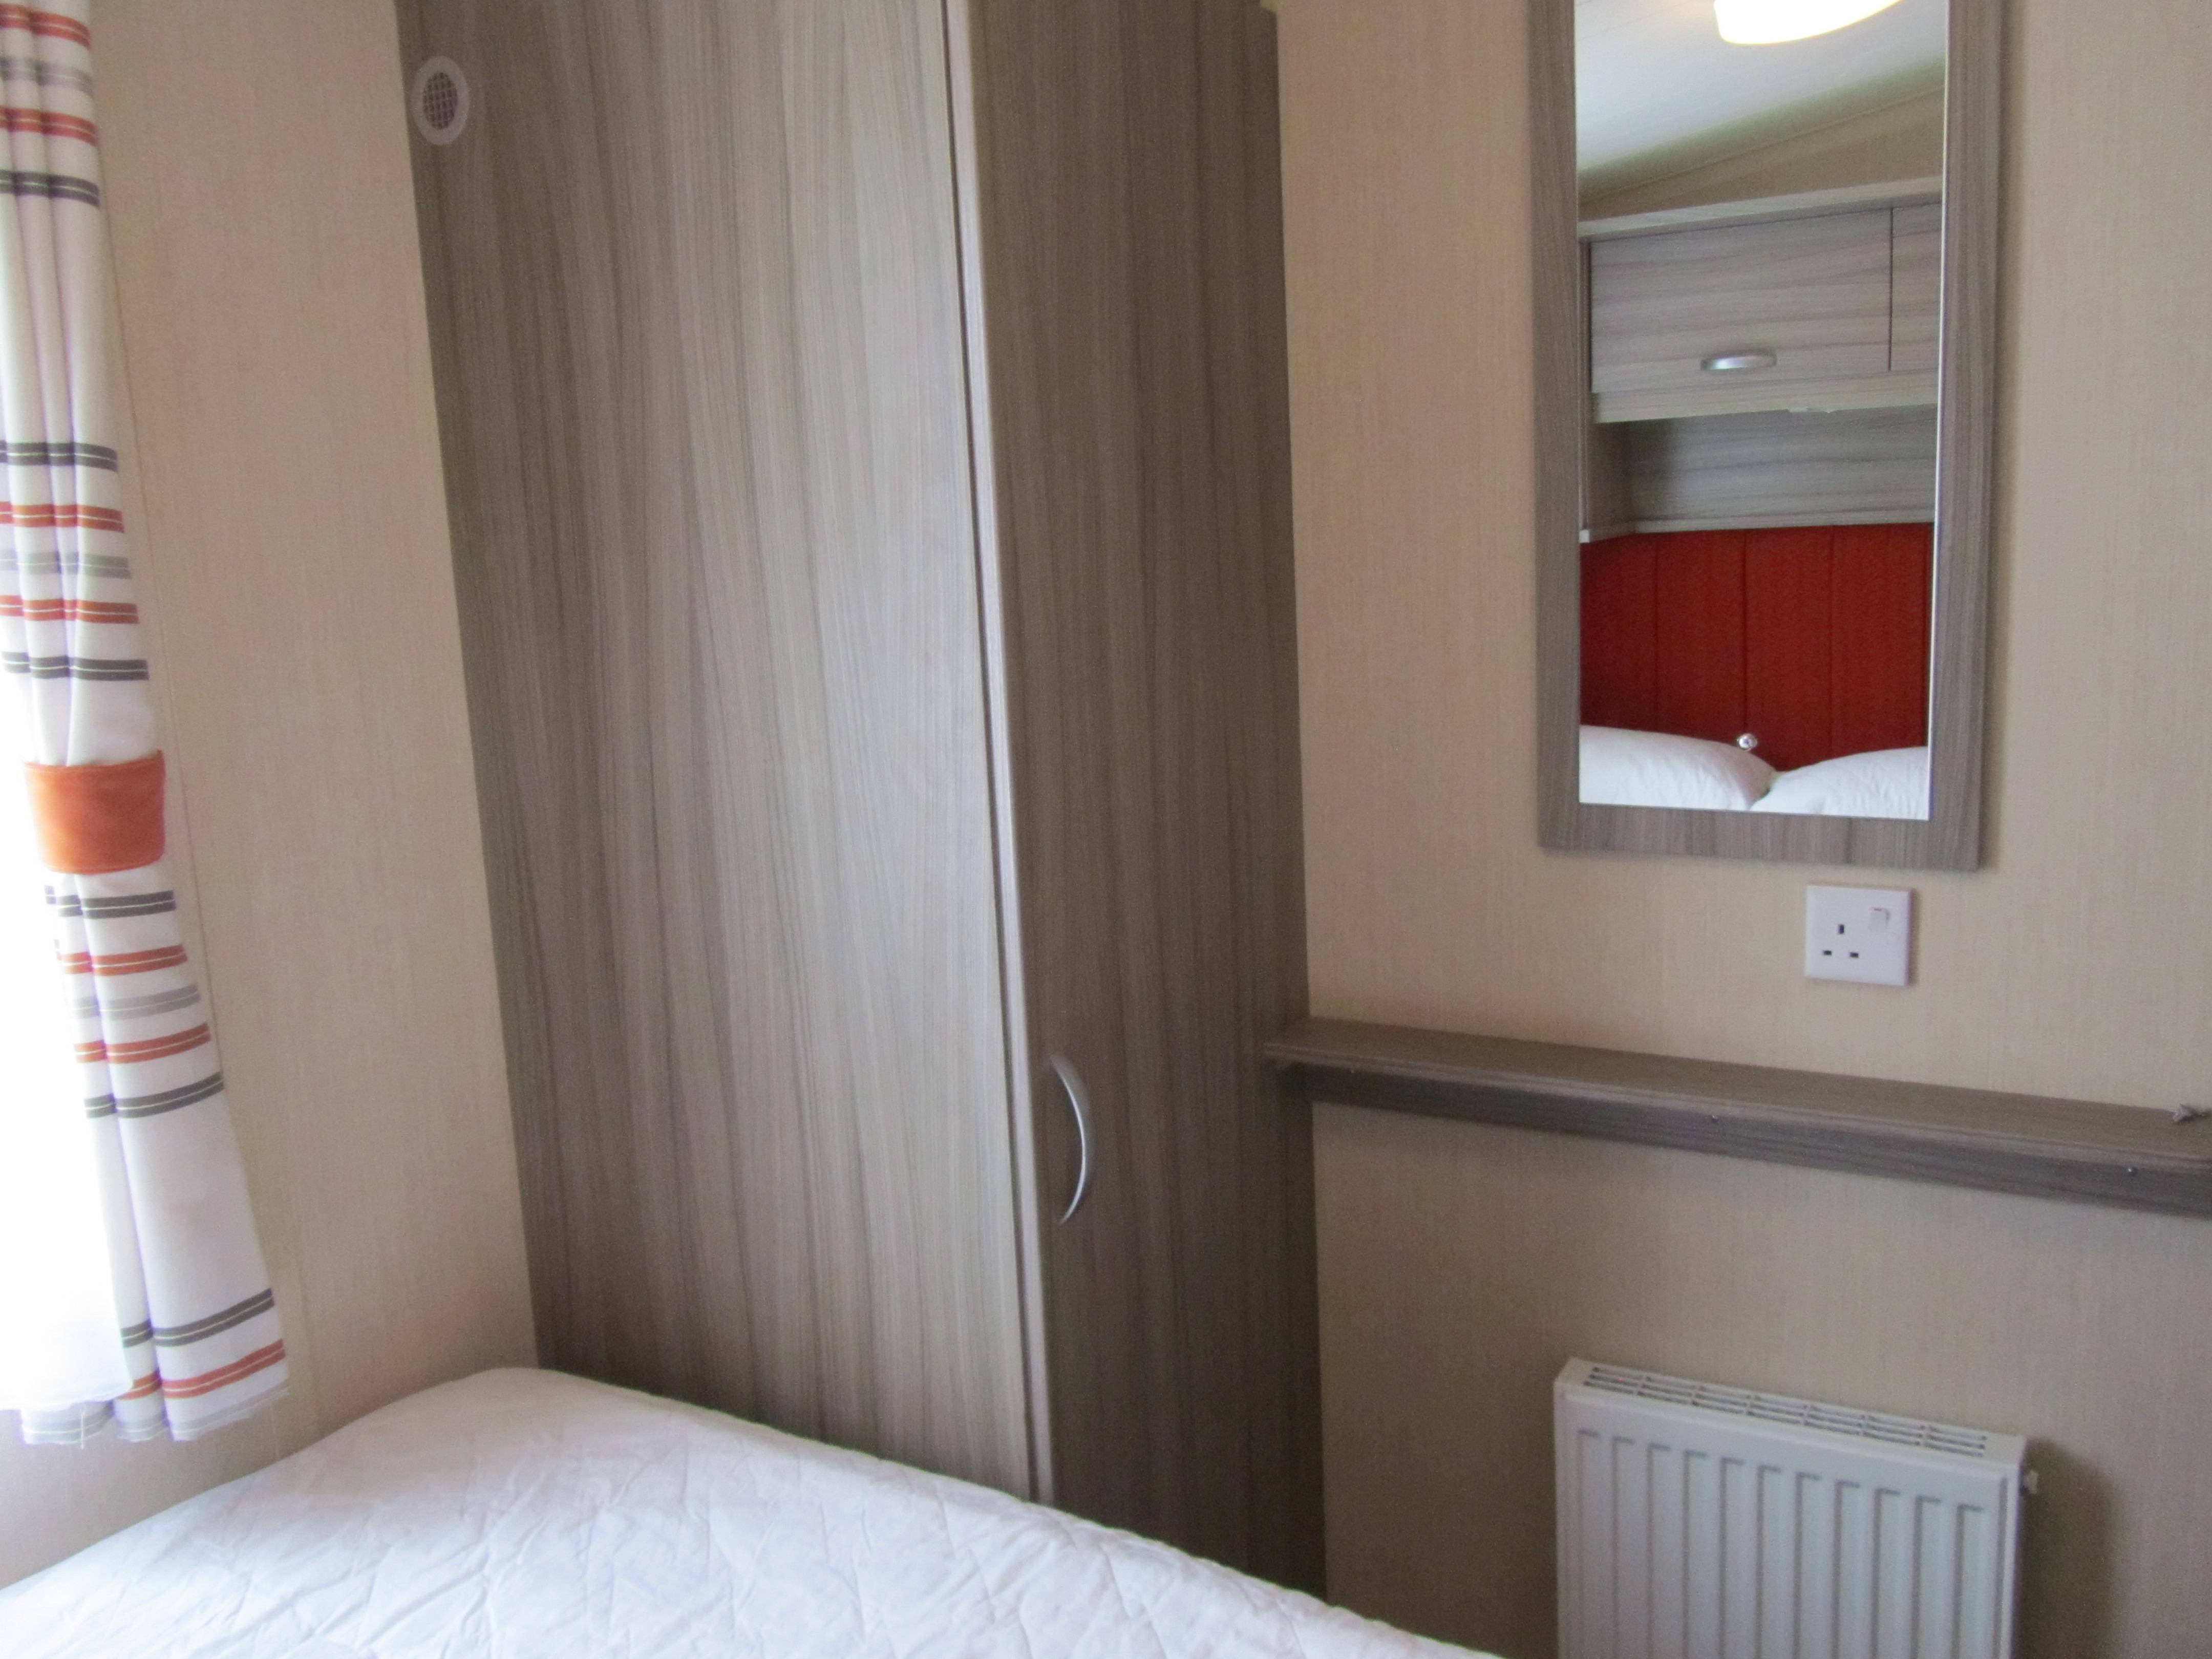 wardrobe in double bedroom with radiator and mirror